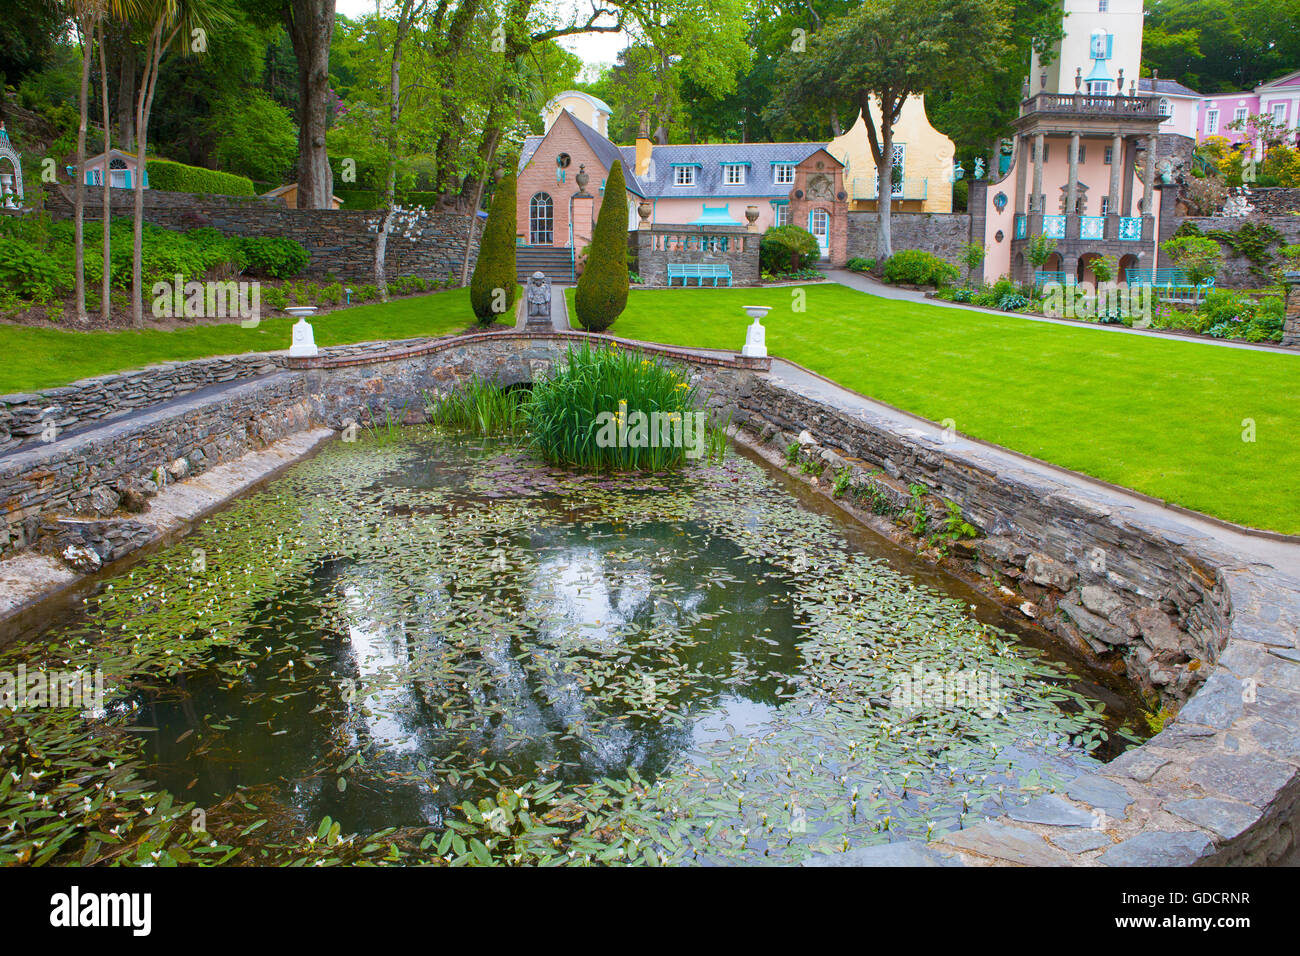 Fishpond, Portmeirion, with Salutation and Gloriette buildings beyond. Stock Photo